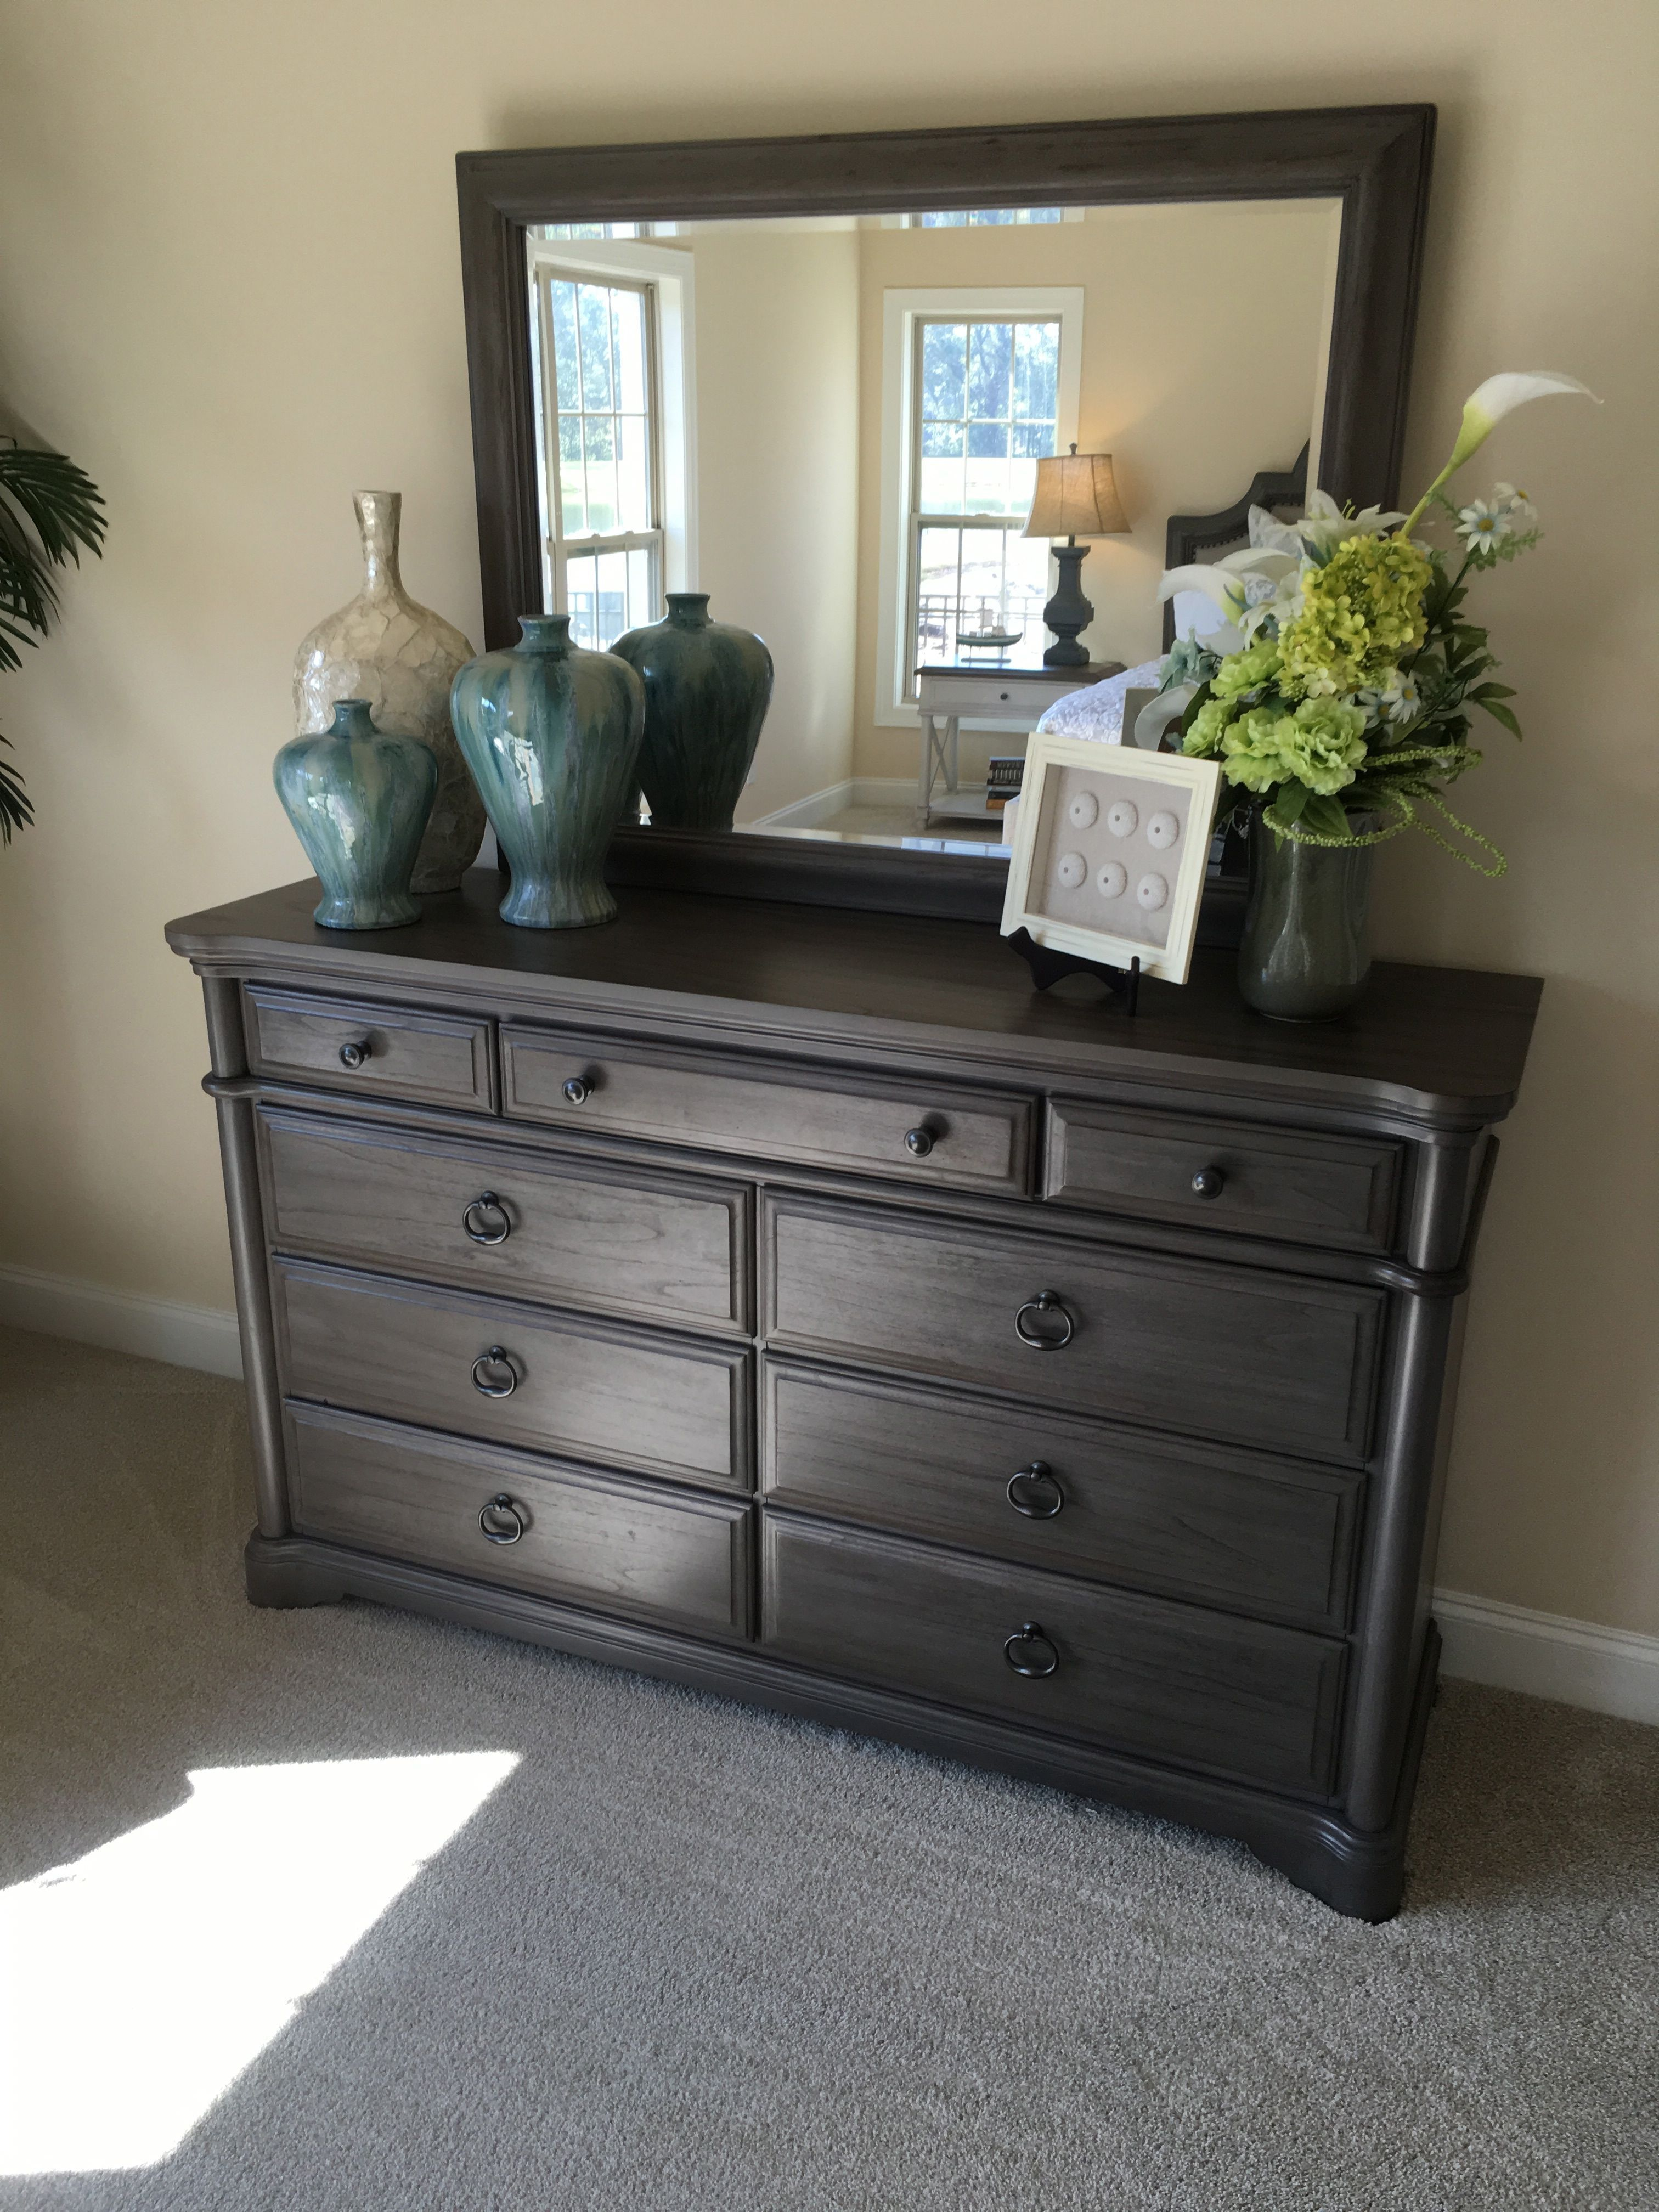 How To Stage A Bedroom Dresser With Vases Urns Frames And